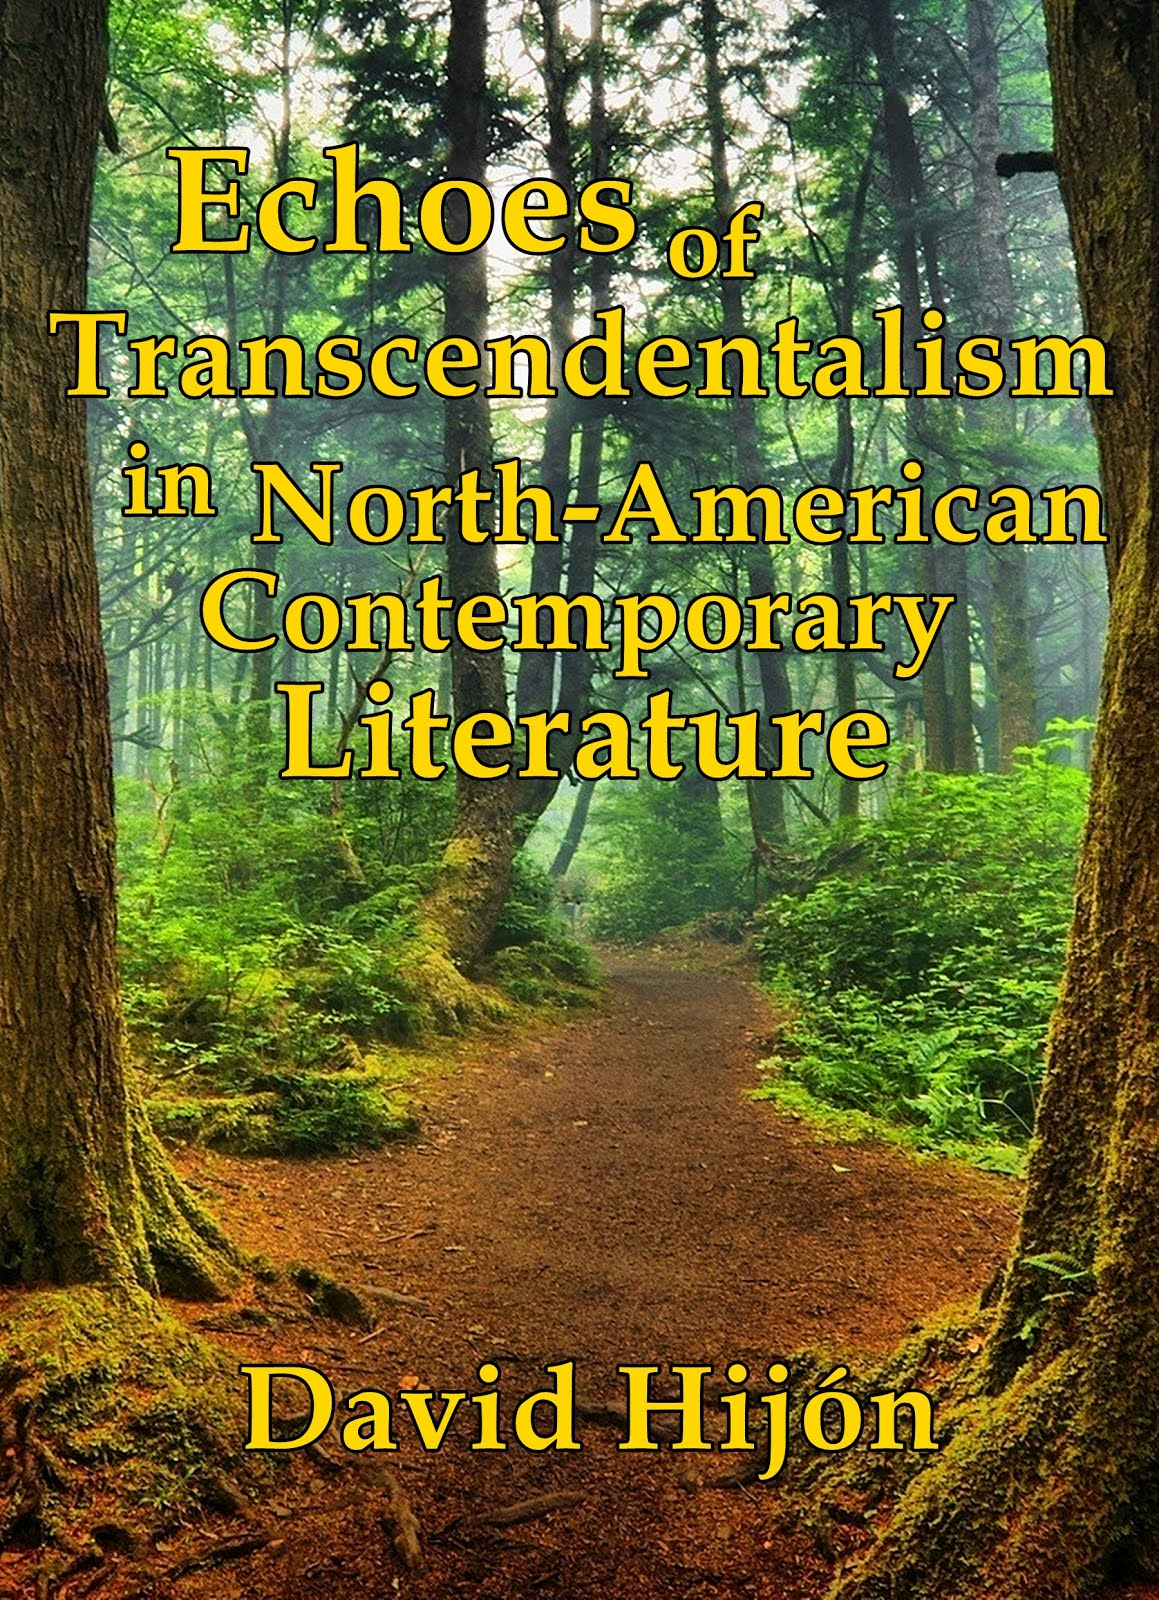 Echoes of Transcendentalism in North-American Contemporary Literature